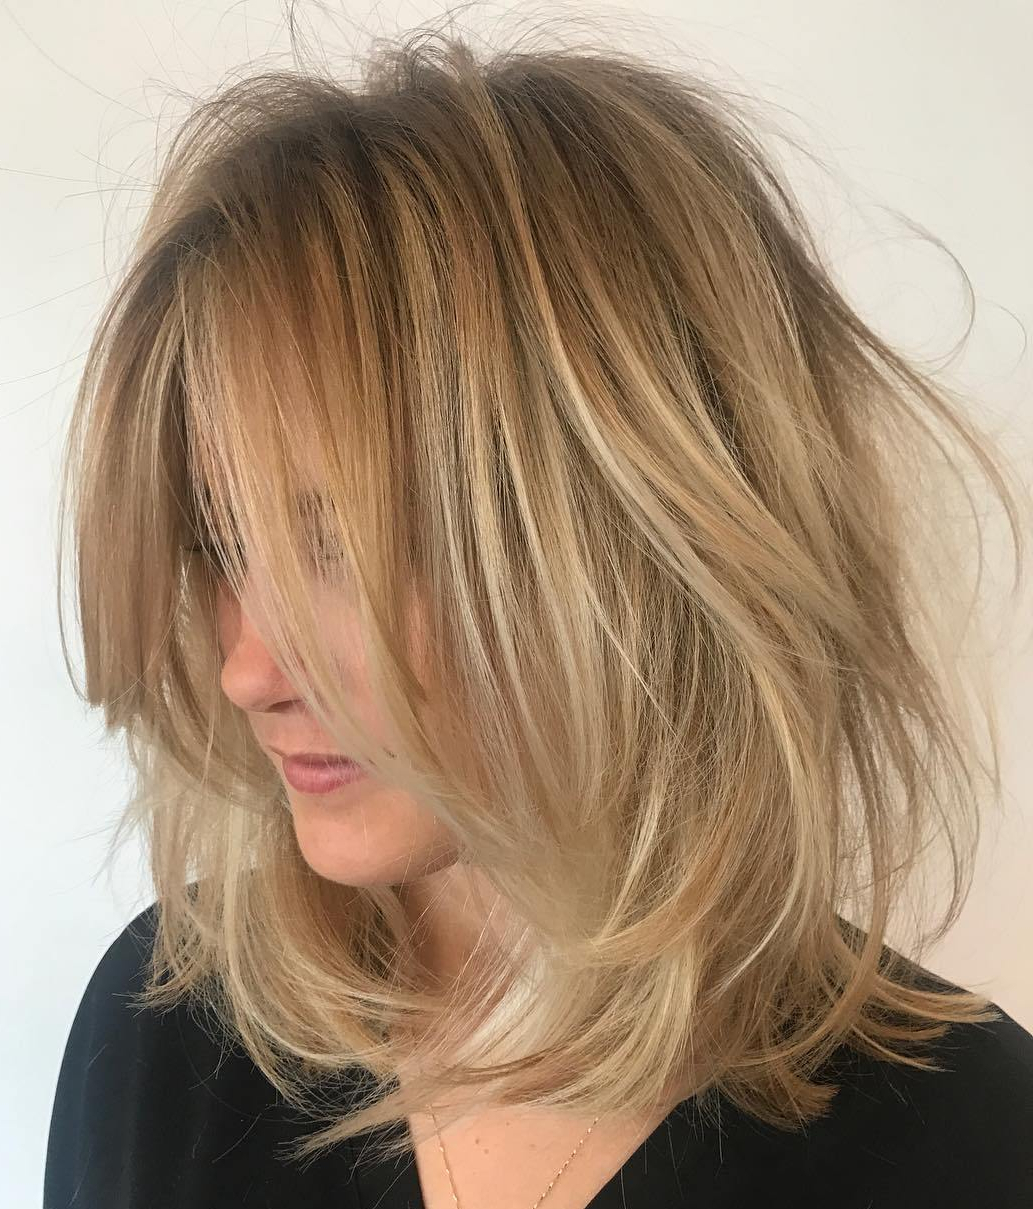 70 Devastatingly Cool Haircuts For Thin Hair For Tousled Wavy Bronde Bob Hairstyles (View 9 of 20)